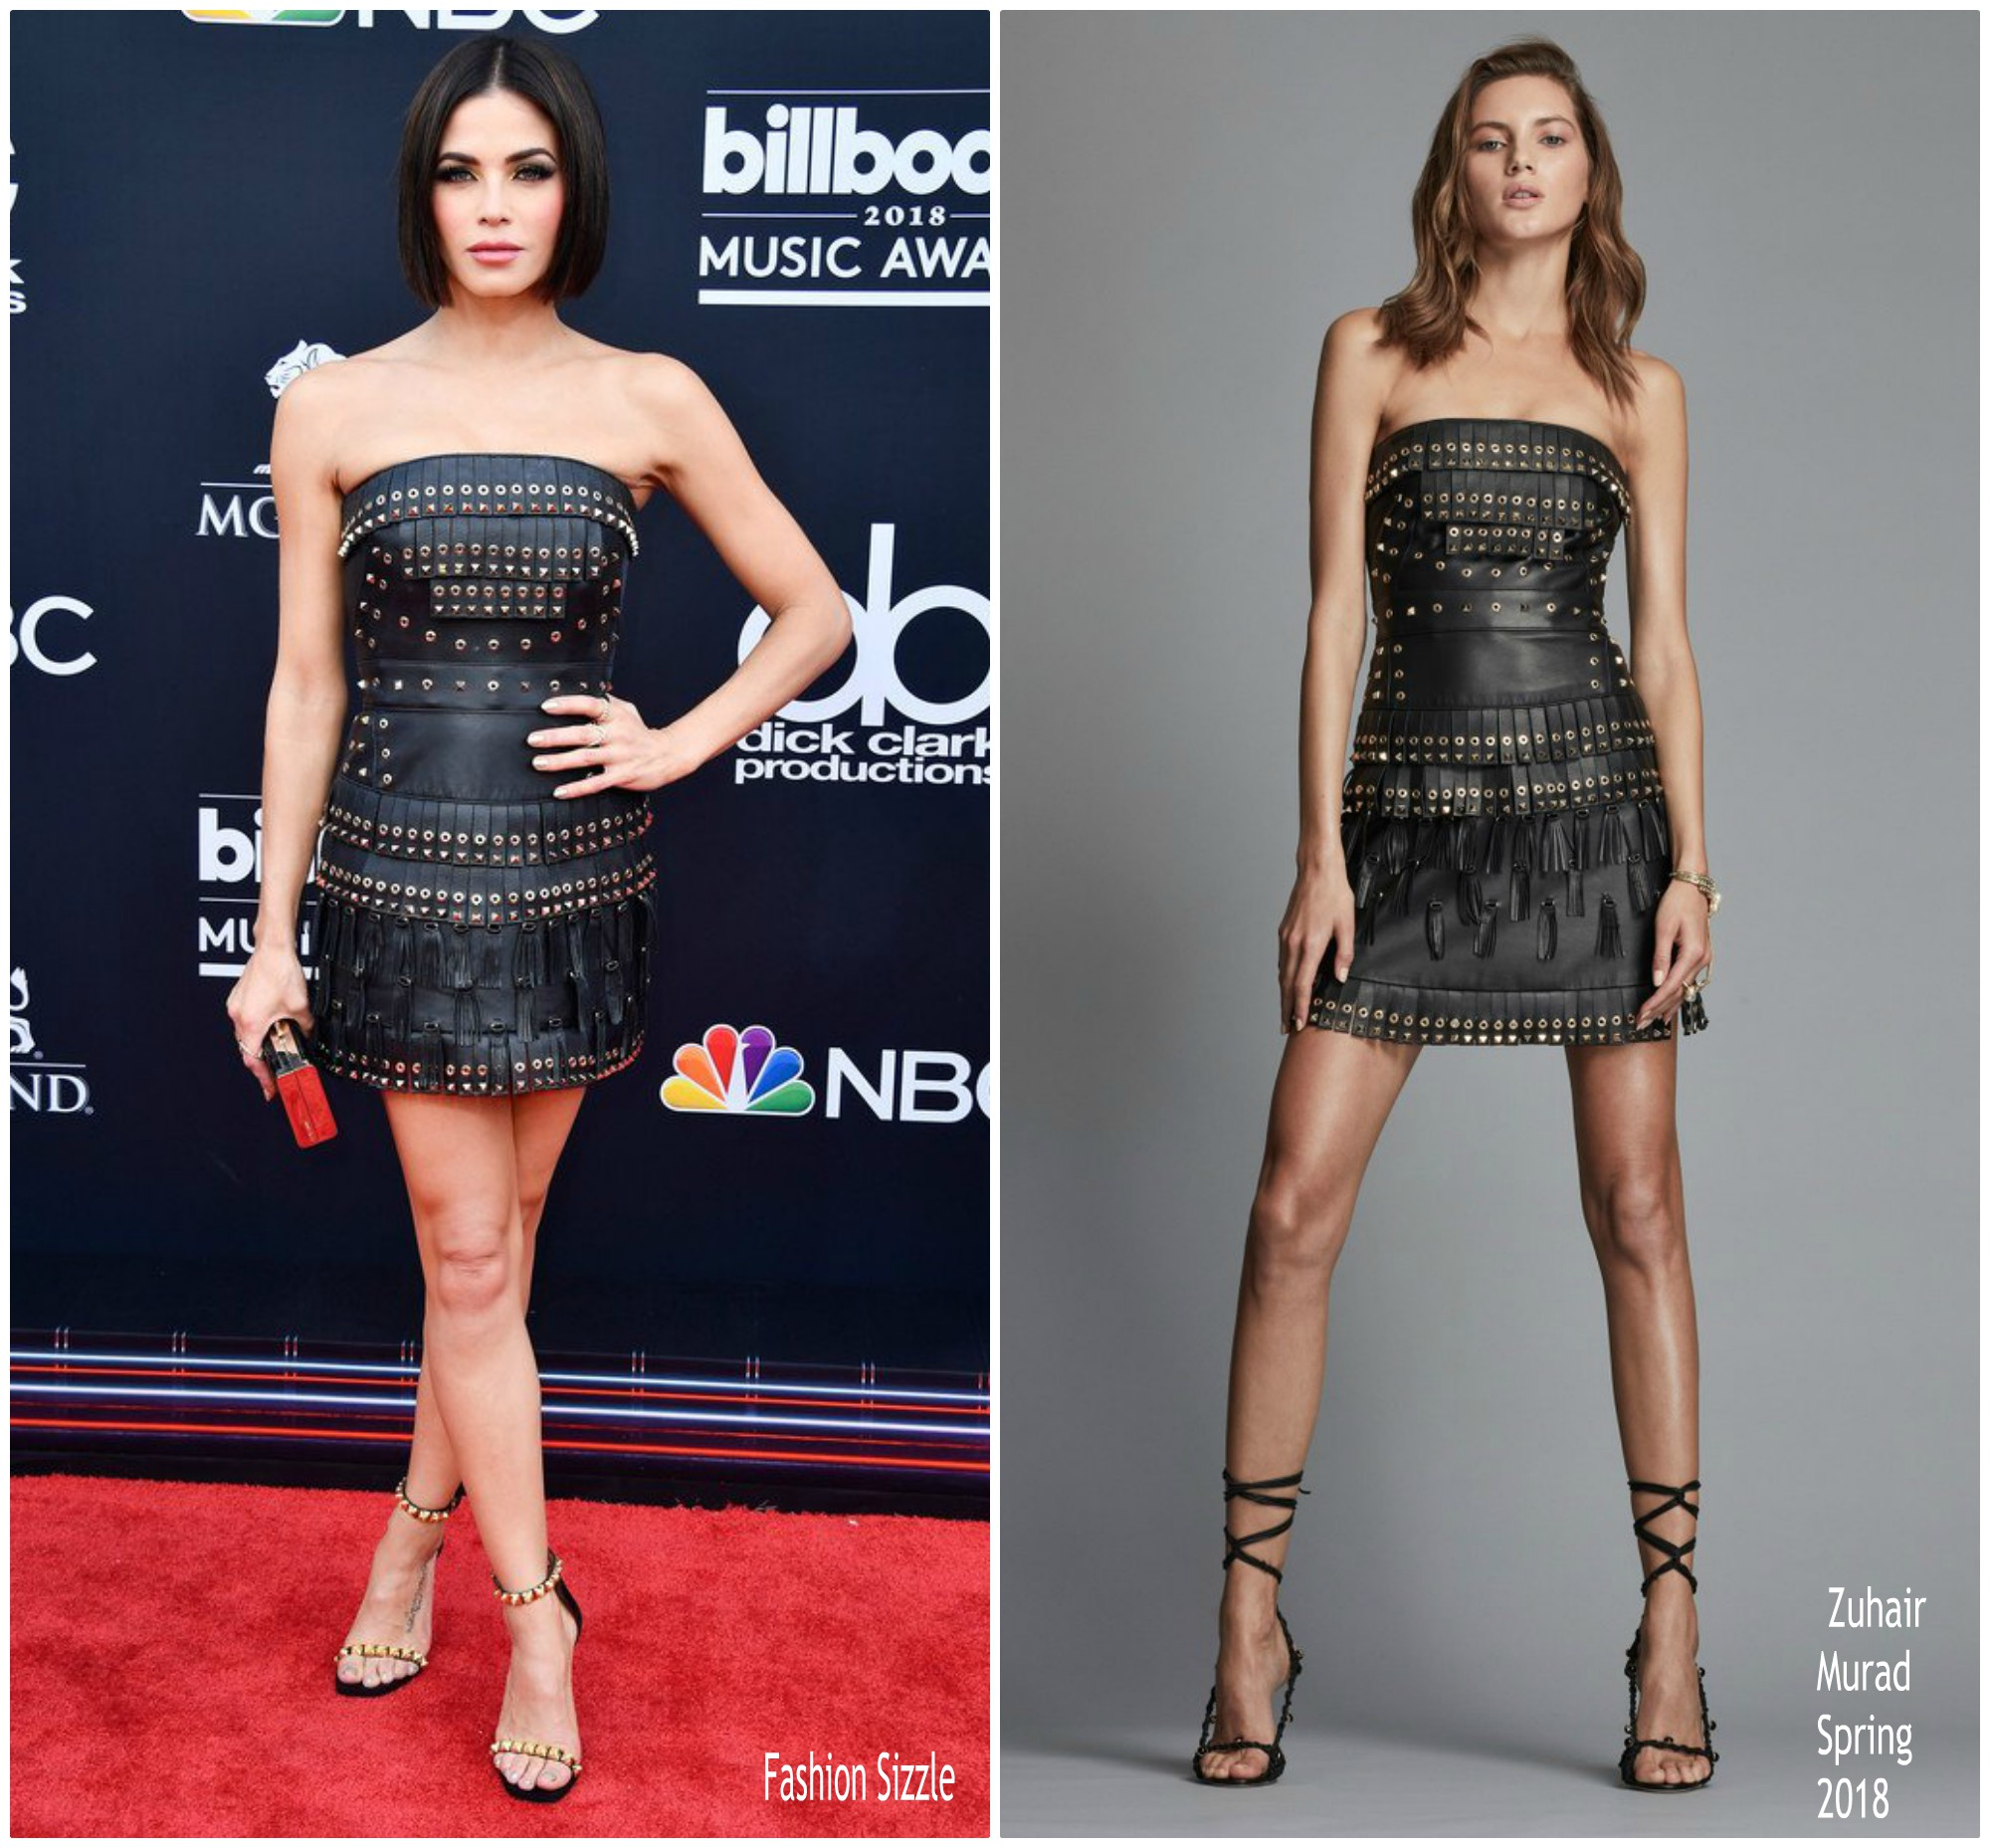 jenna-dewan-in-zuhair-murad-2018-billboard-music-awards